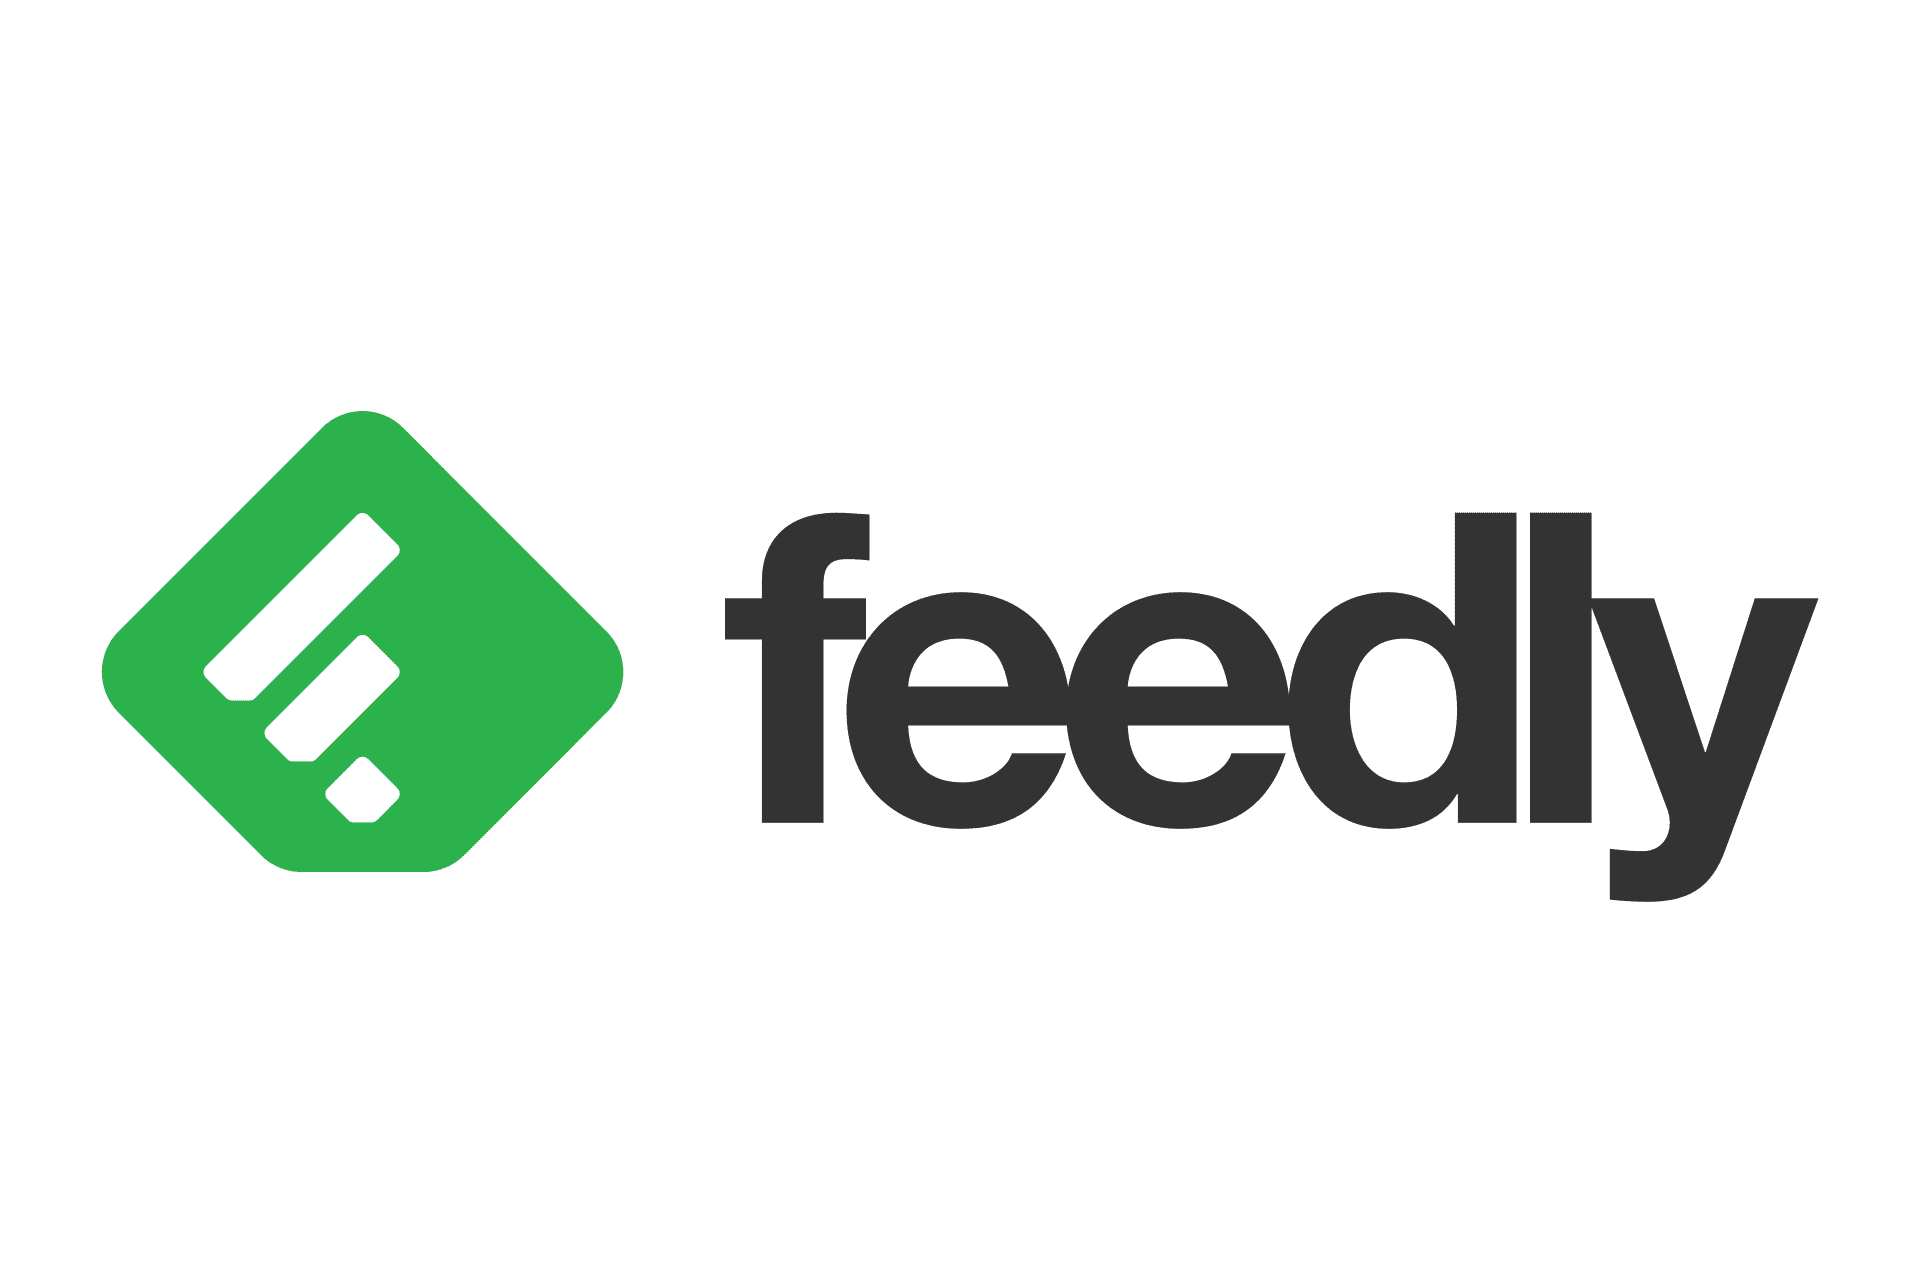 Feedly Png - feedly logo png - #1 Growth Hacking Agency Toronto, GTA Marketing